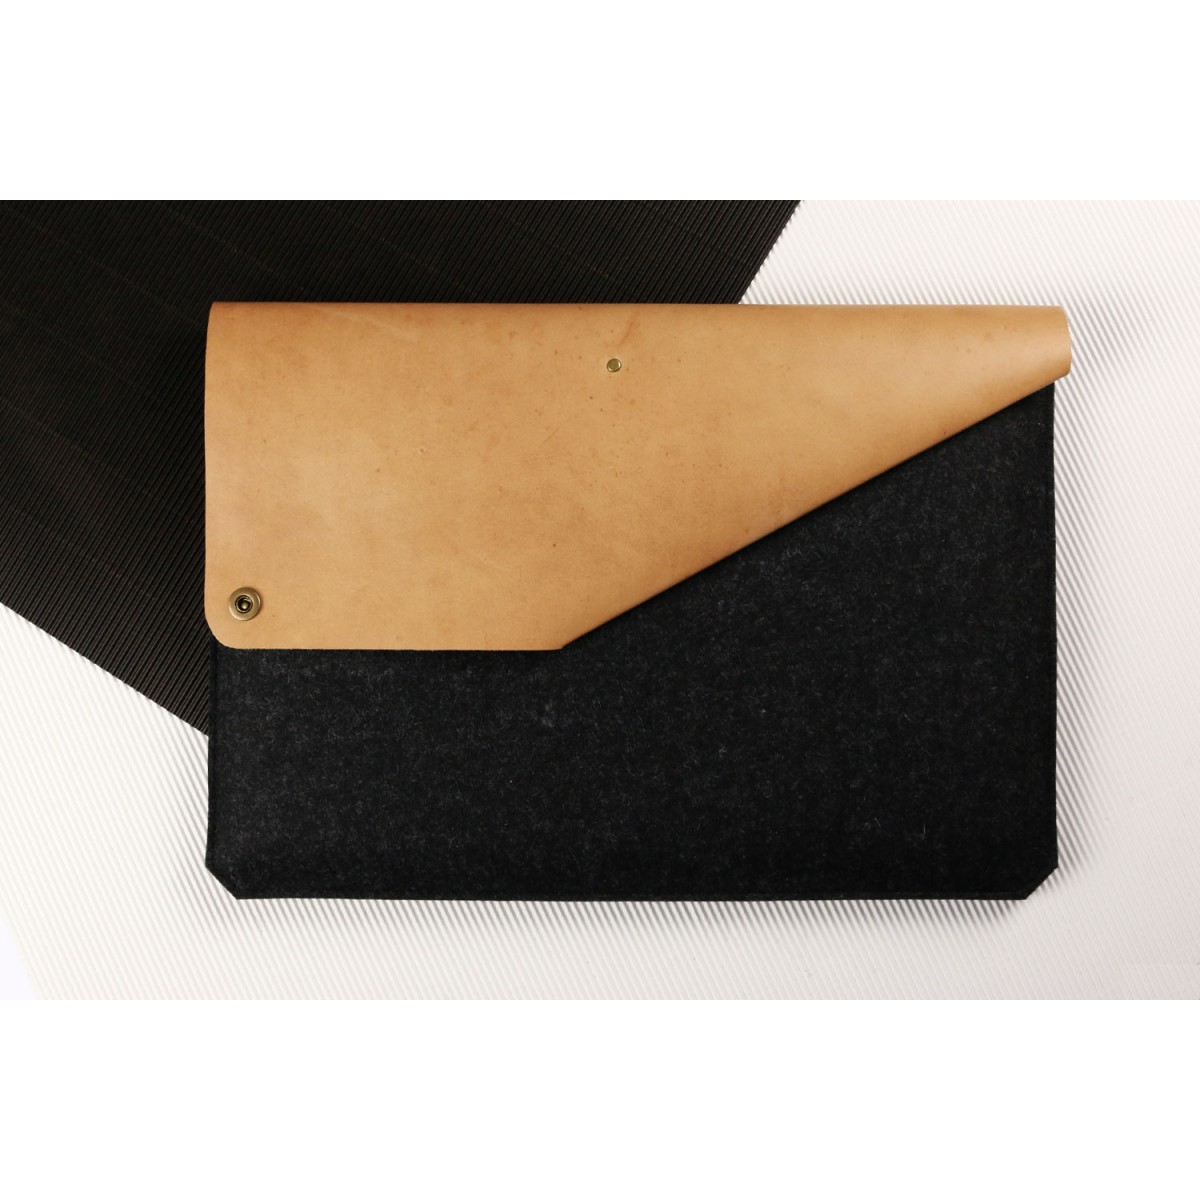 "Alexej Nagel 13"" MacBook Air & Pro Sleeve aus Leder & Filz anthrazit [B]"